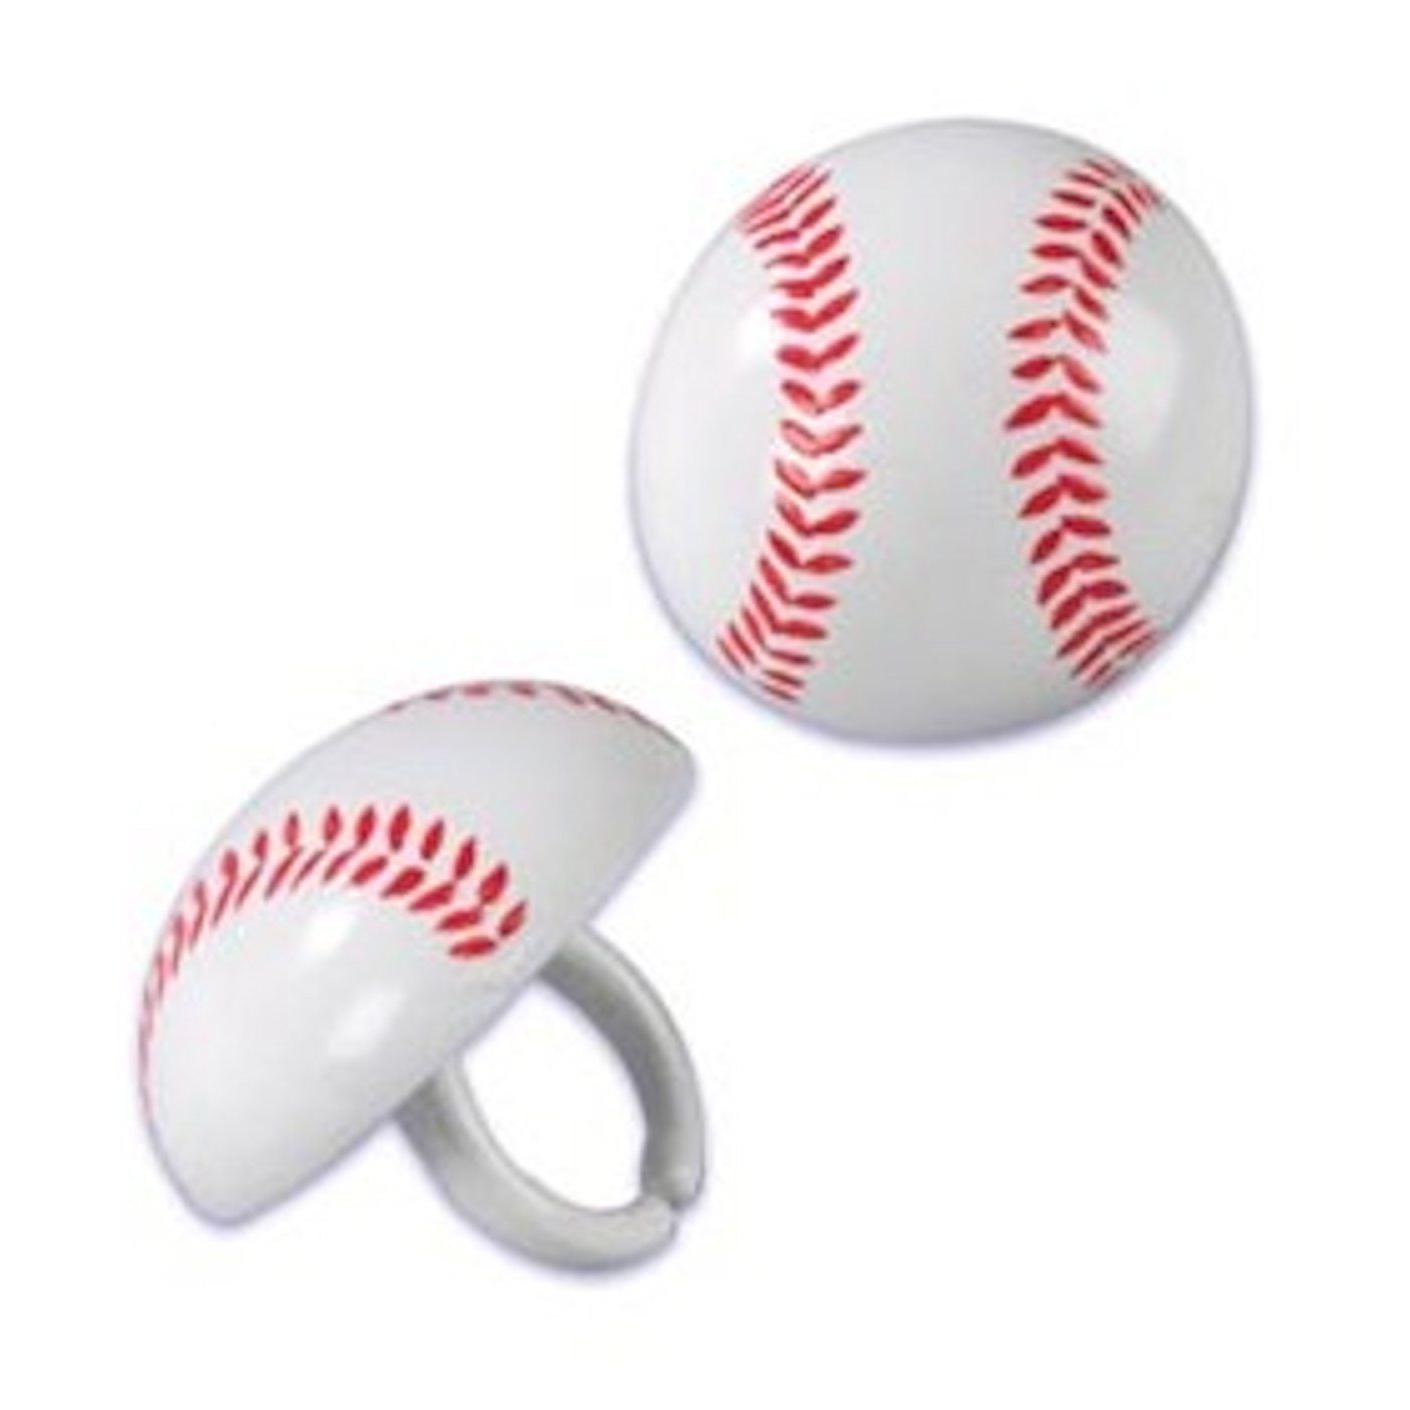 BASEBALL TOPPERS CAKE SPORTS FAVORS24 PC SET